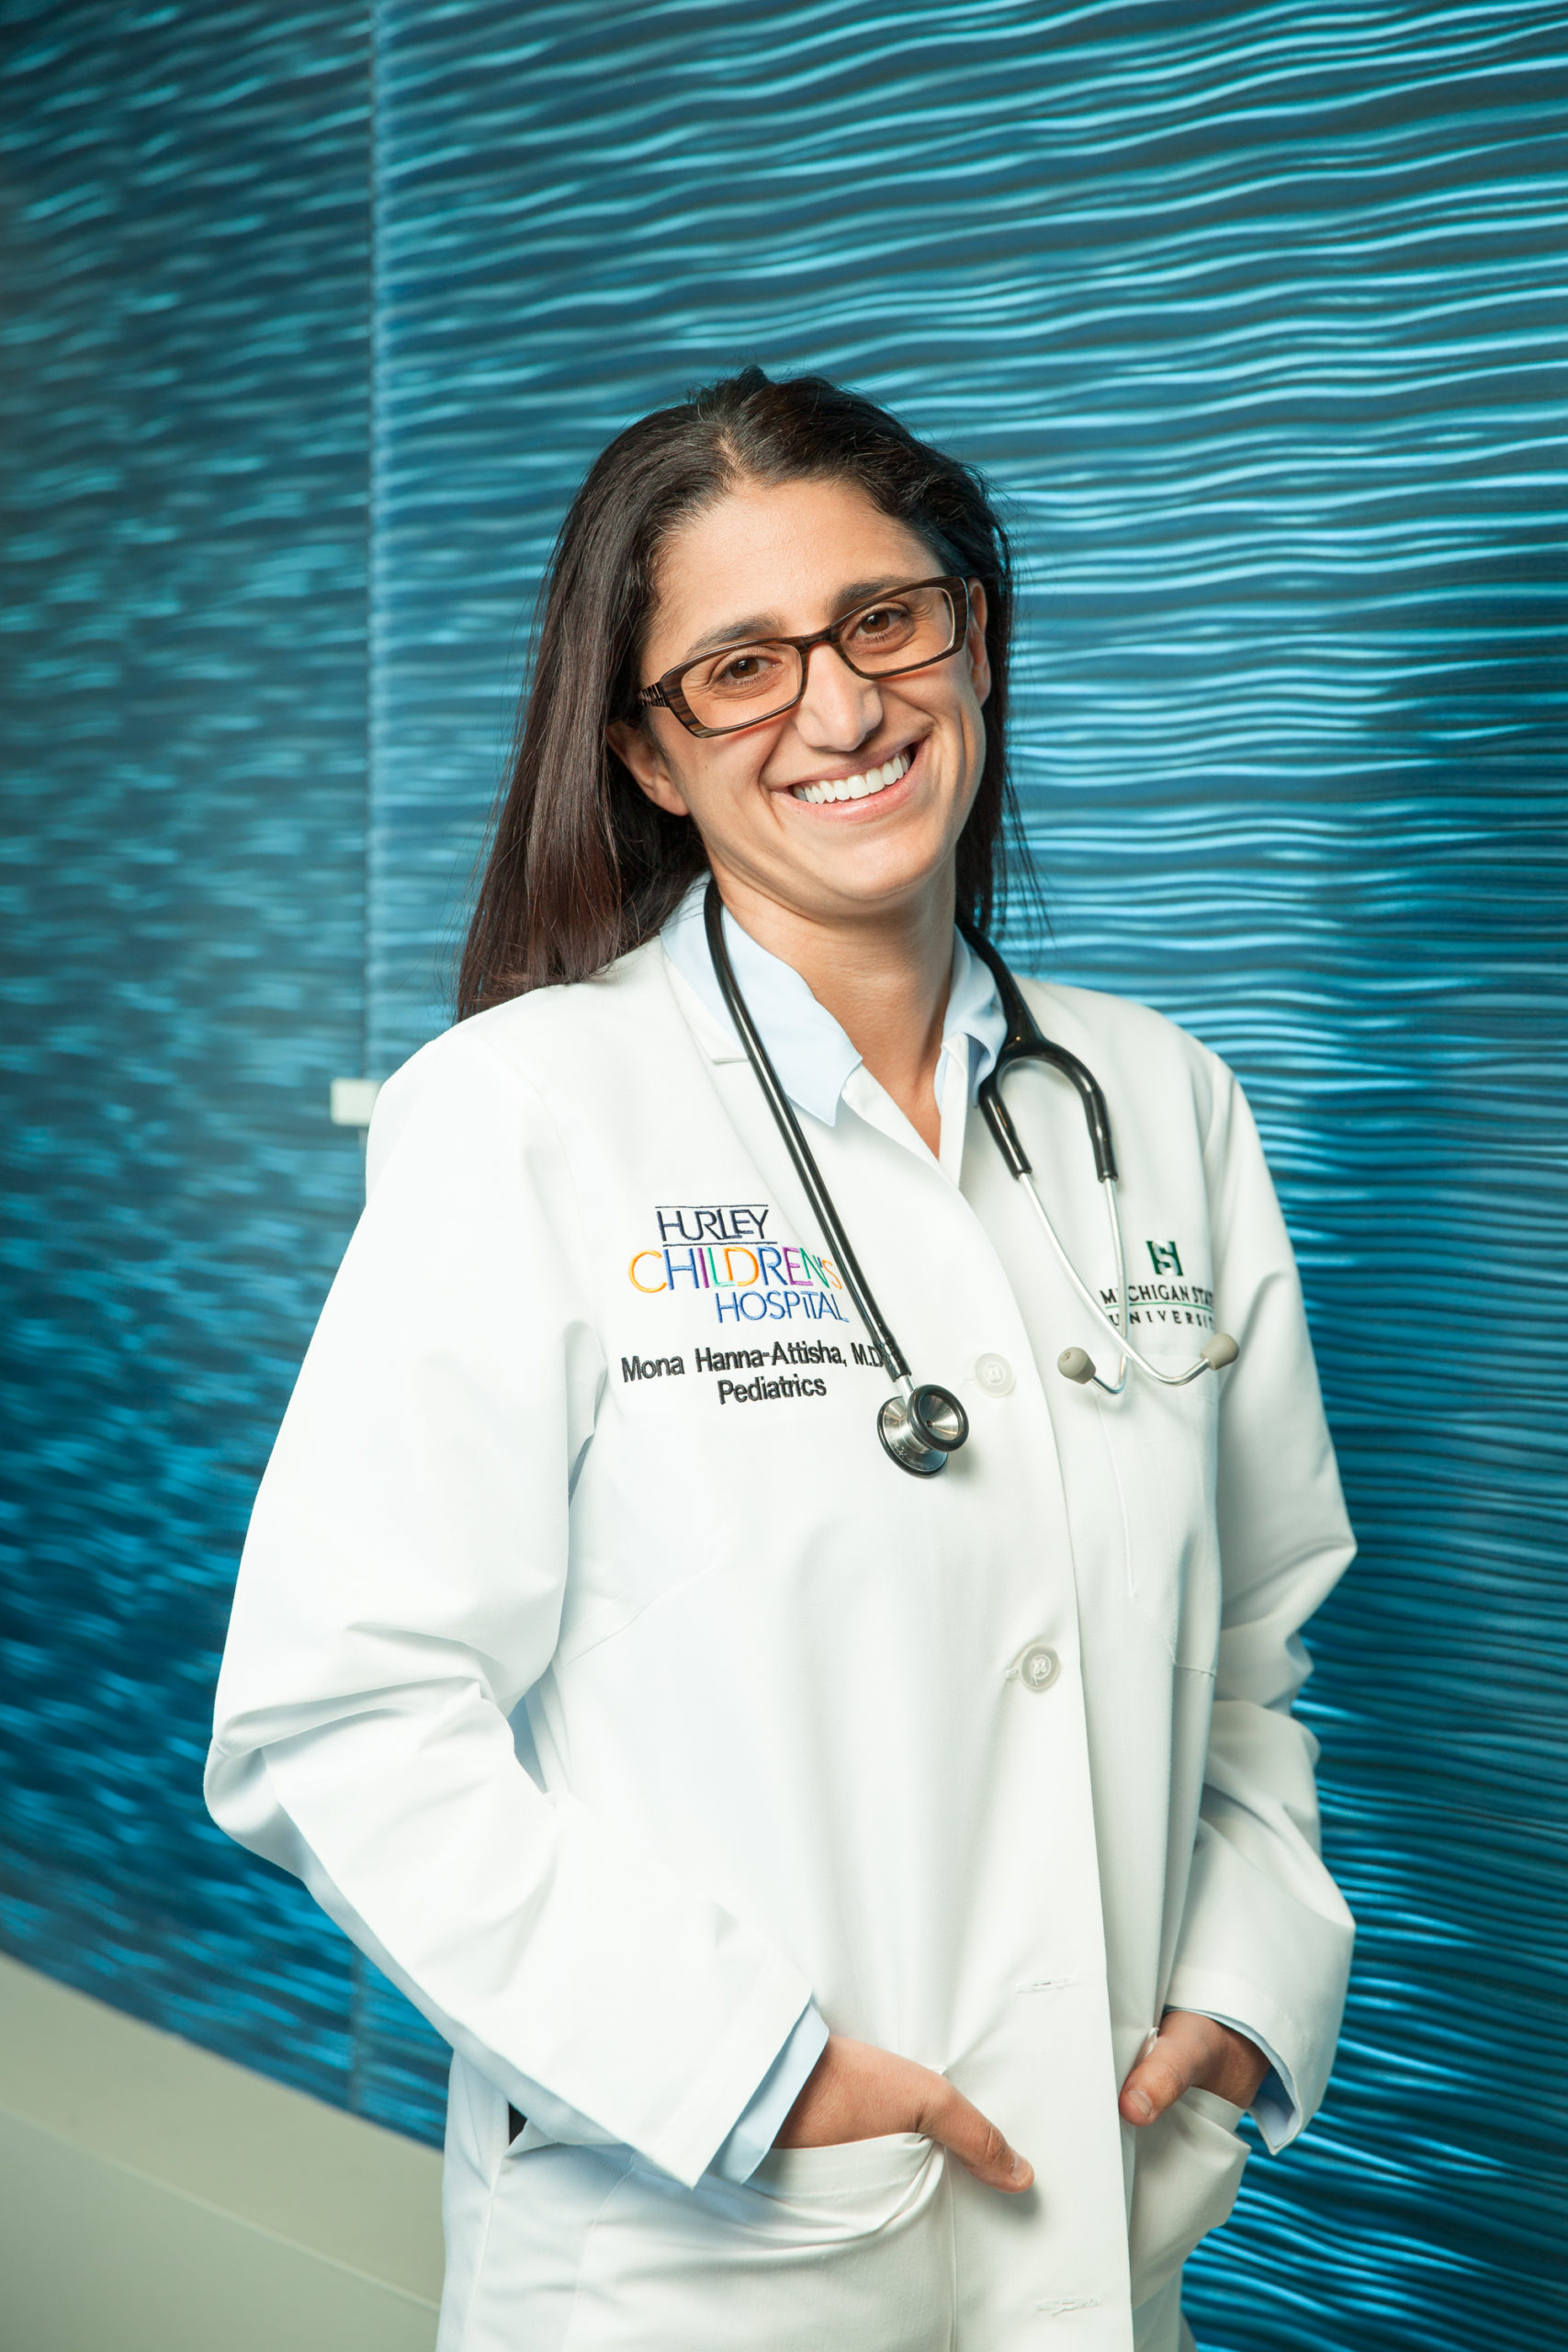 Dr. Mona Hanna-Attisha standing and smiling in front of a blue background